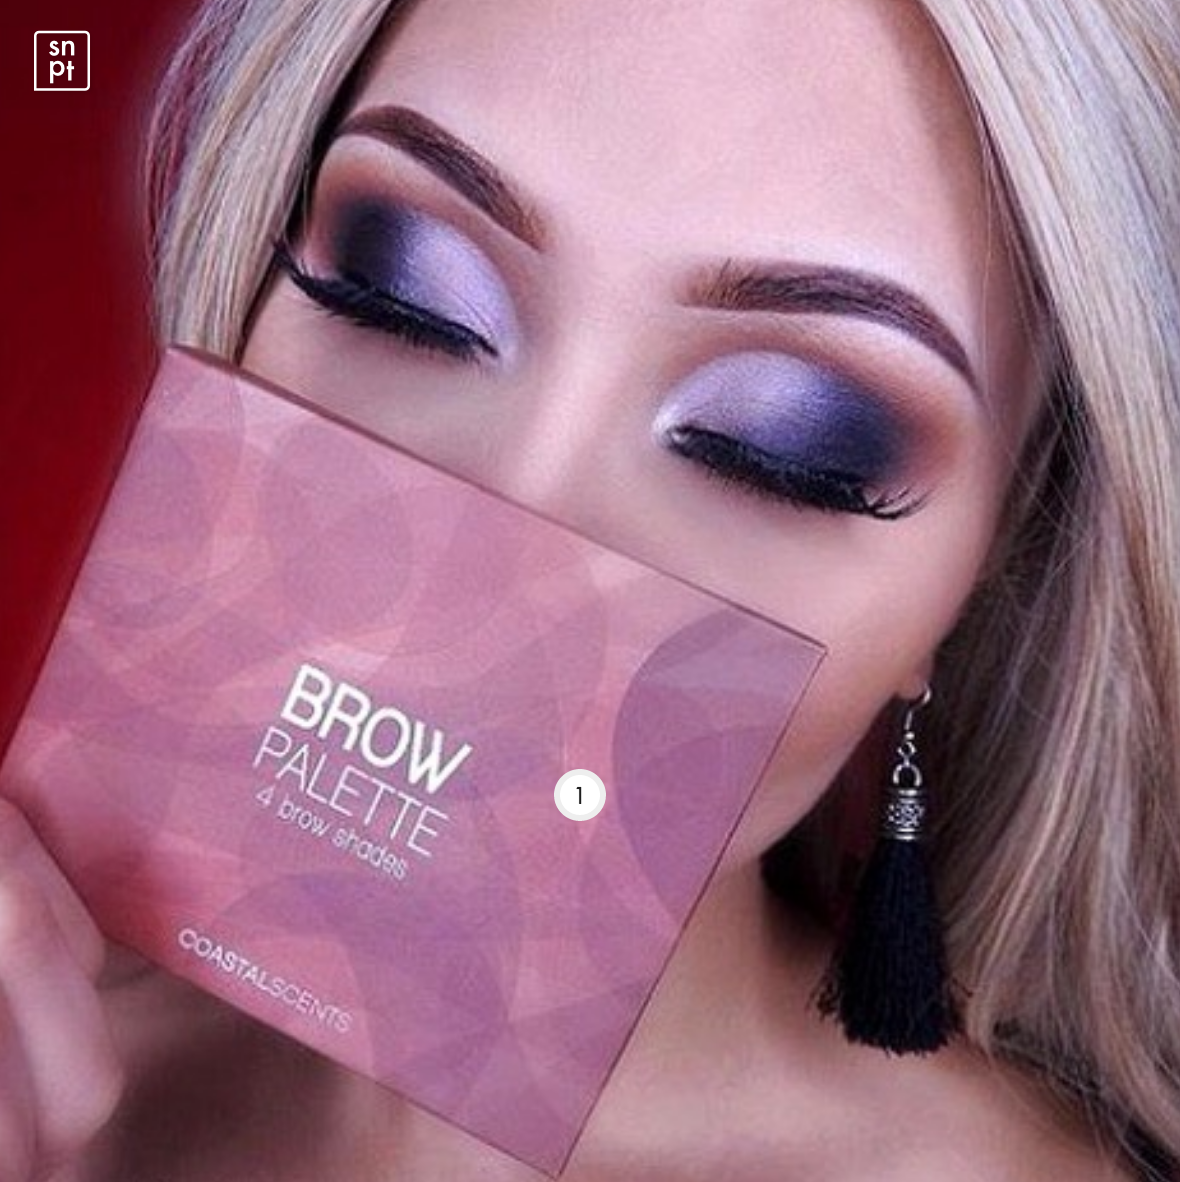 Coastal Scents - Brow Palette | Makeup & Beauty Brands Looking for Influencers